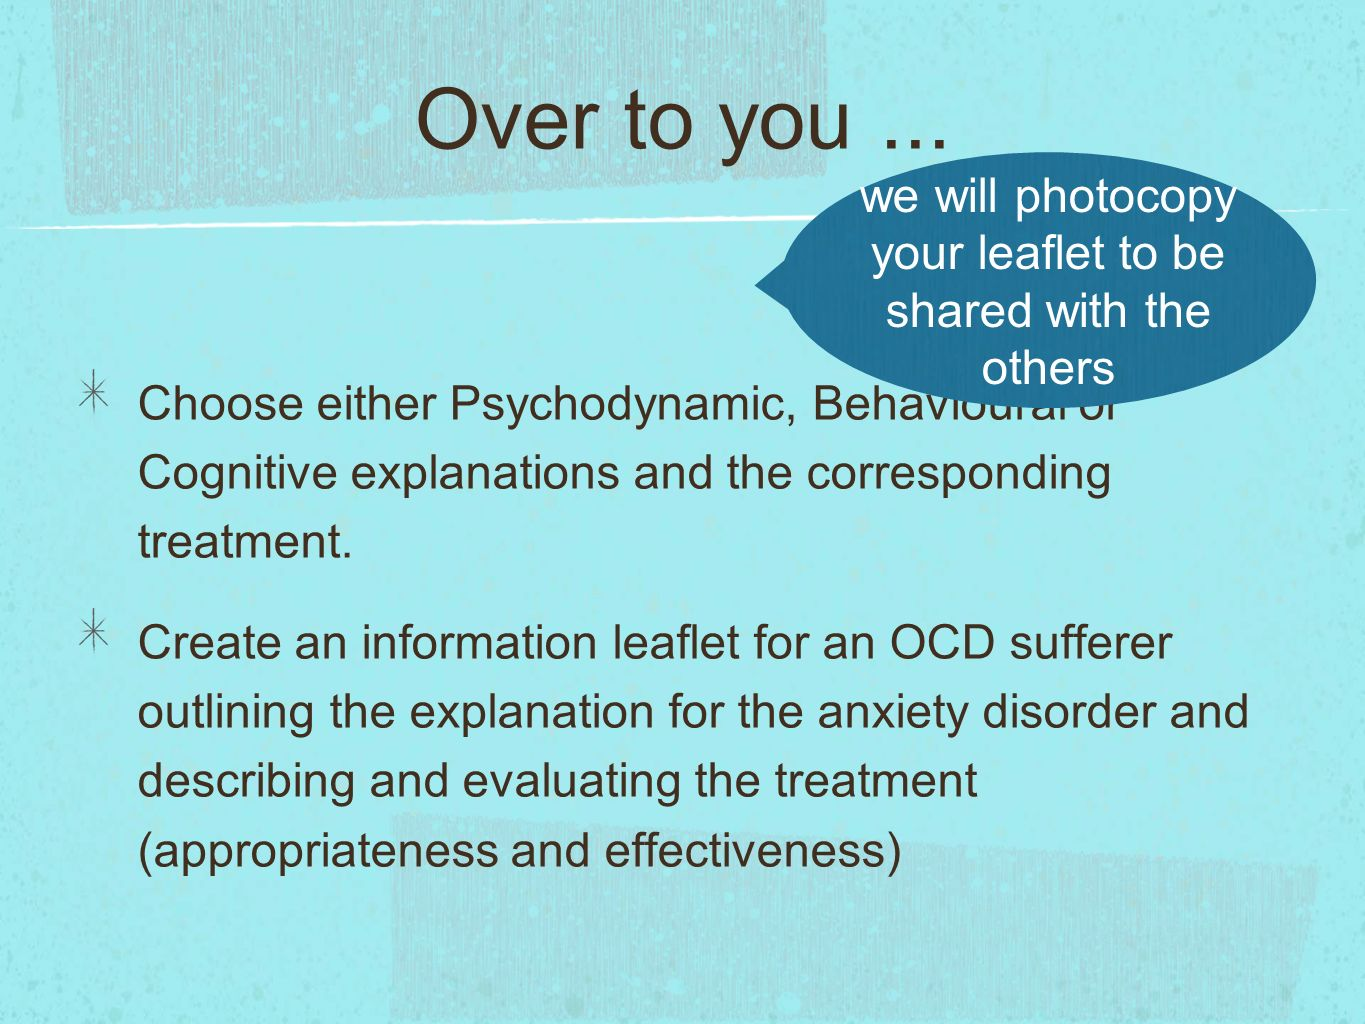 describe and evaluate behavioural treatments for Learn how cognitive behavioral therapy (cbt) is used to help people  because  of the way we interpret or evaluate our situations, thoughts, feelings  describing  the philosophy behind cbt is easiest with using an example.